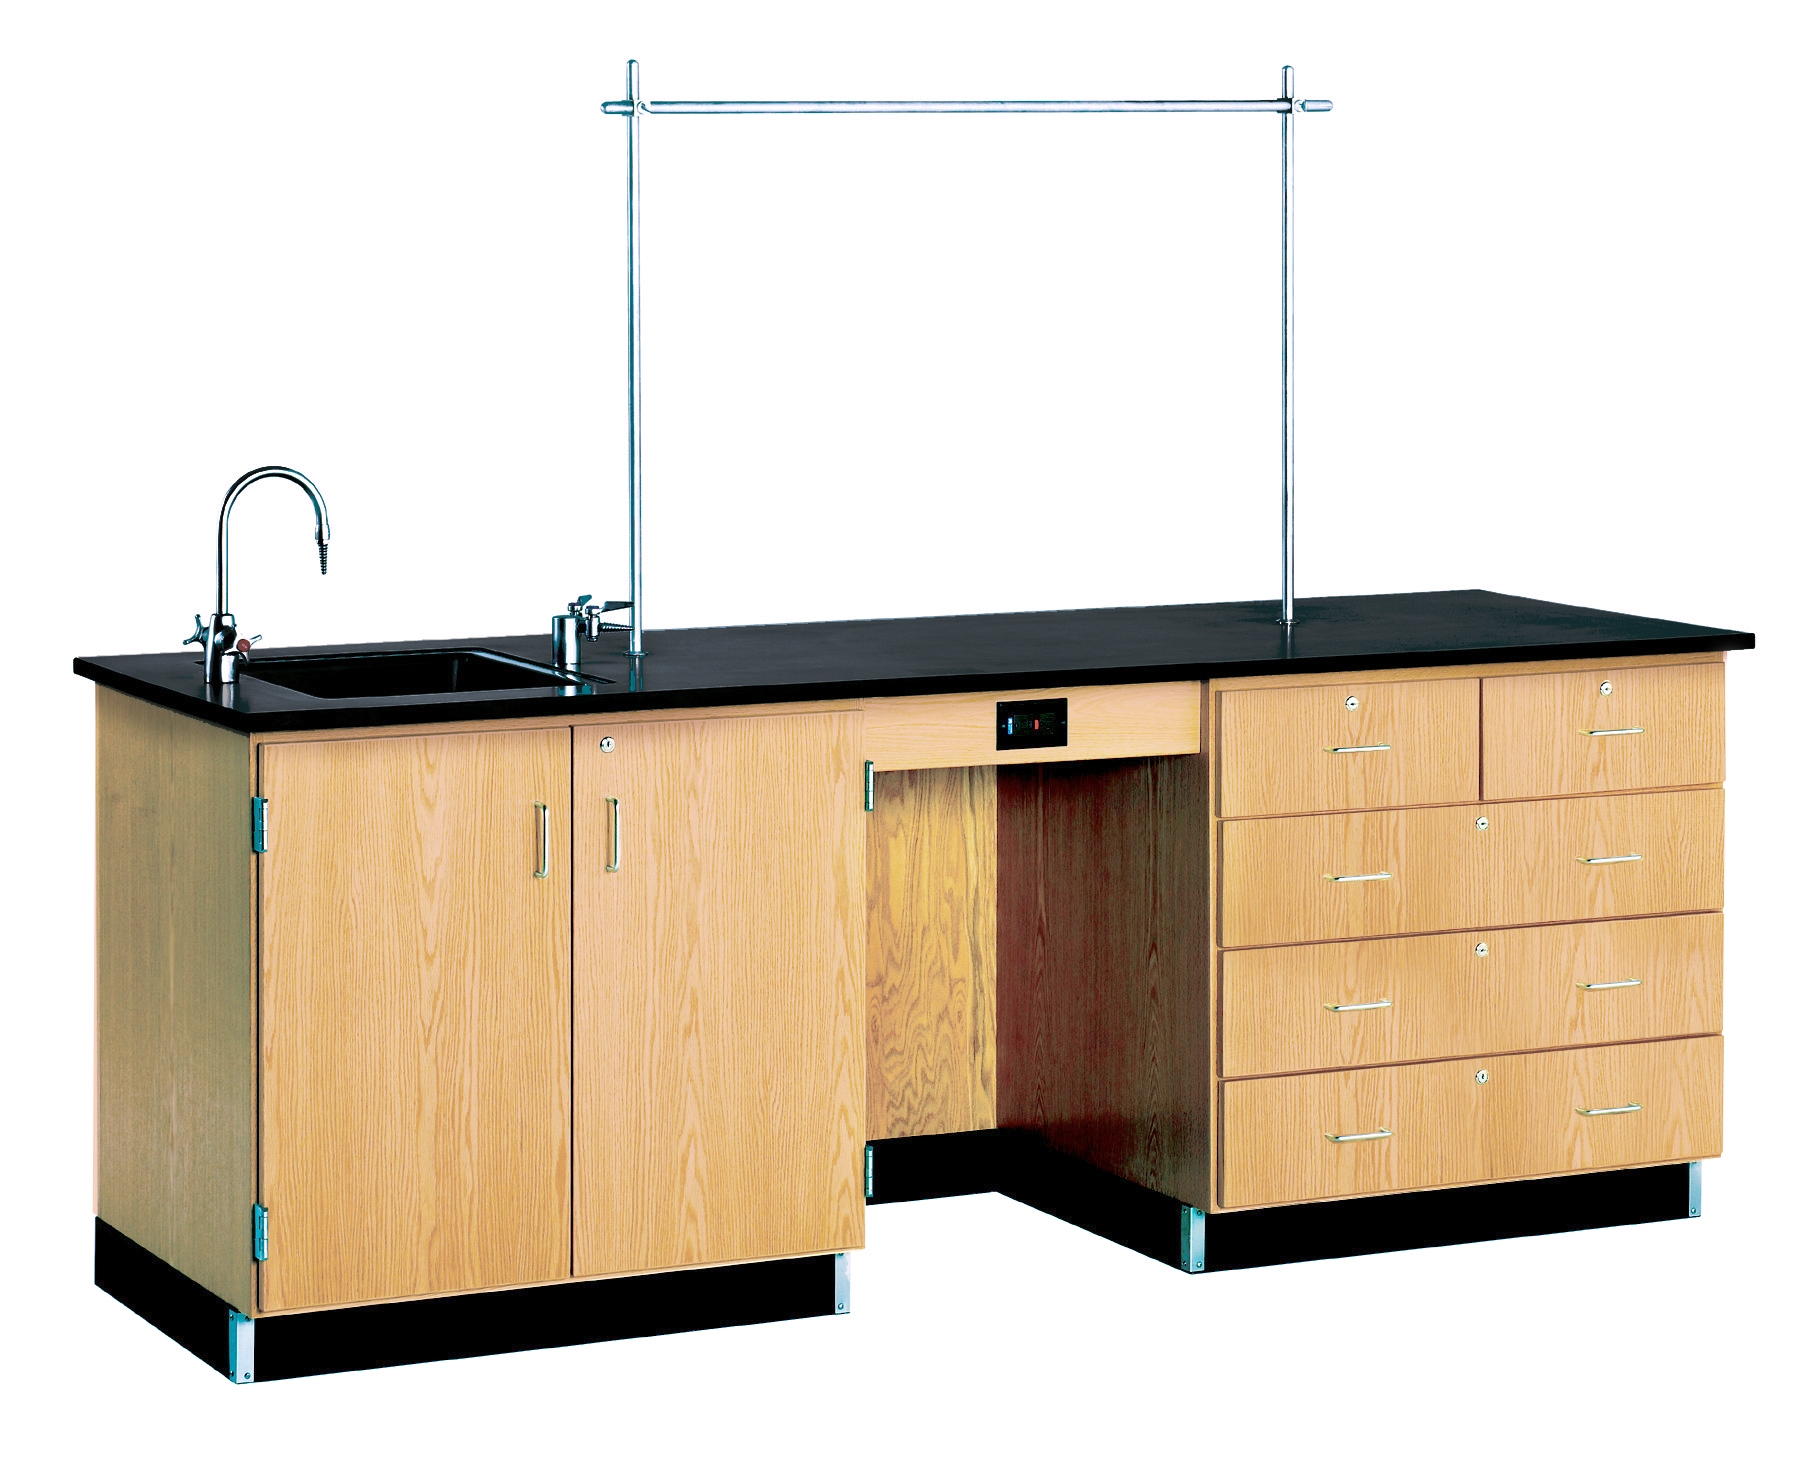 Diversified Woodcrafts 8' Instructor's Desk with Phenolic Resin Top & Fixtures